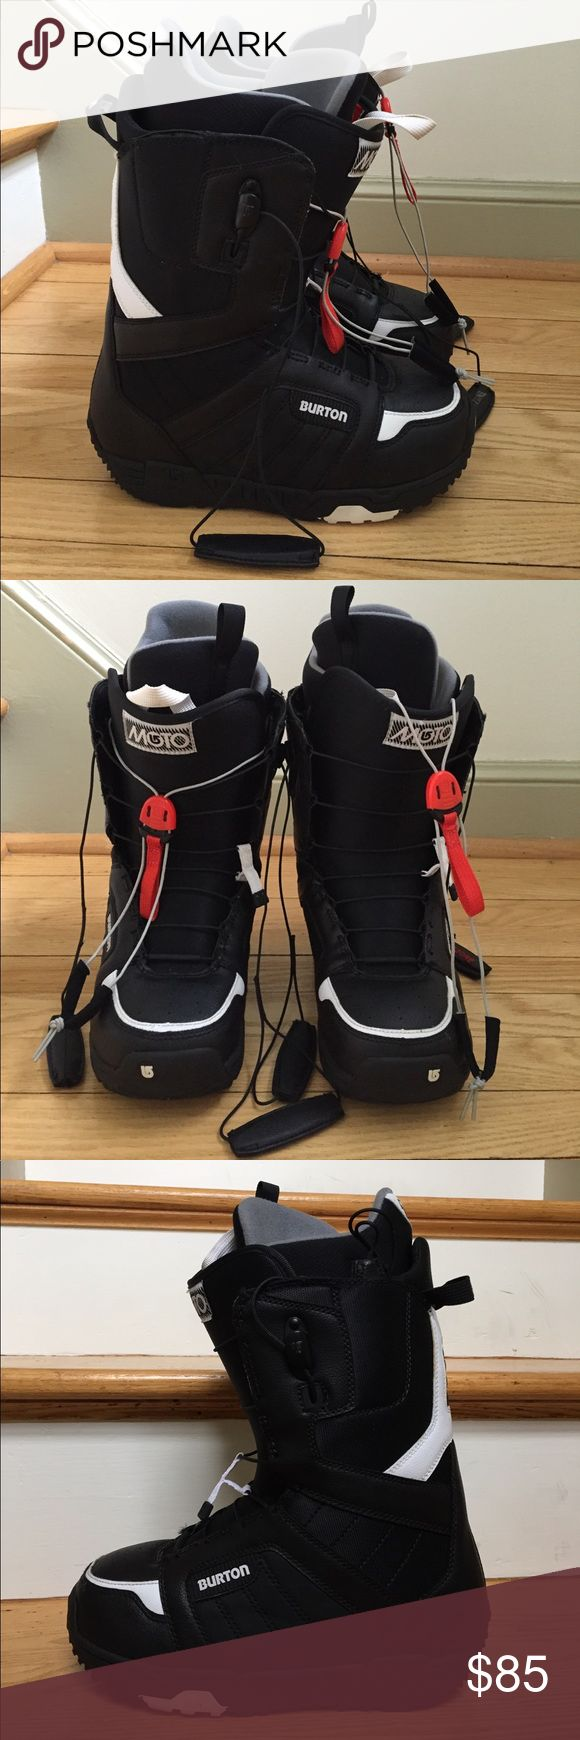 Burton Moto Snowboarding Boots, Men's size 7 Burton Moto Snowboarding Boots, men's size 7. In excellent condition!!! An extra 8$ is added into price due to shipping cost. Shoes Boots